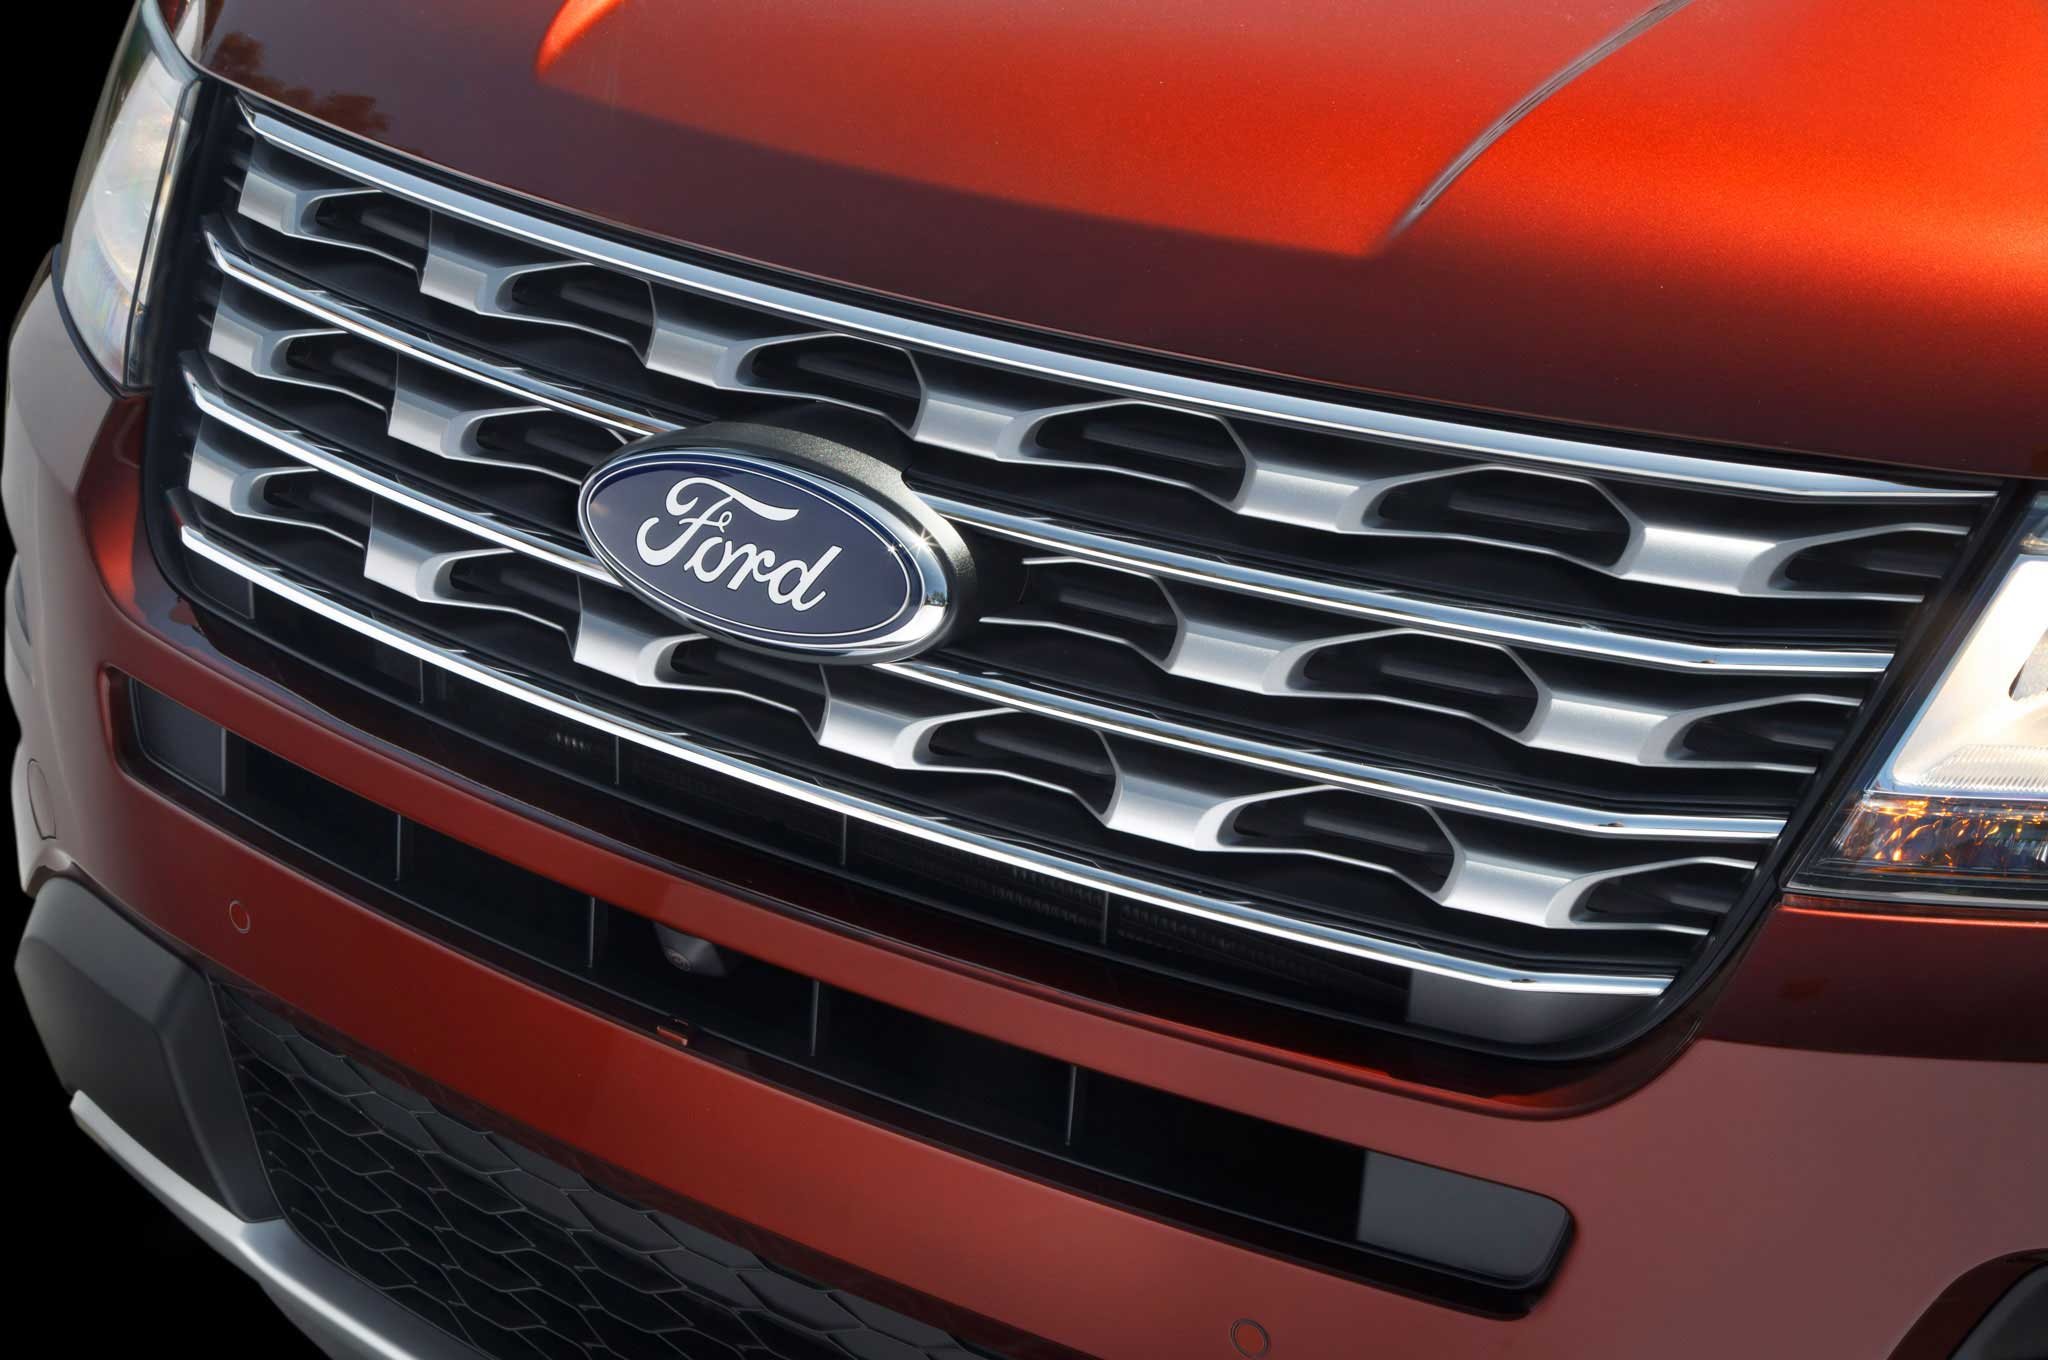 2016-ford-explorer-front-grill